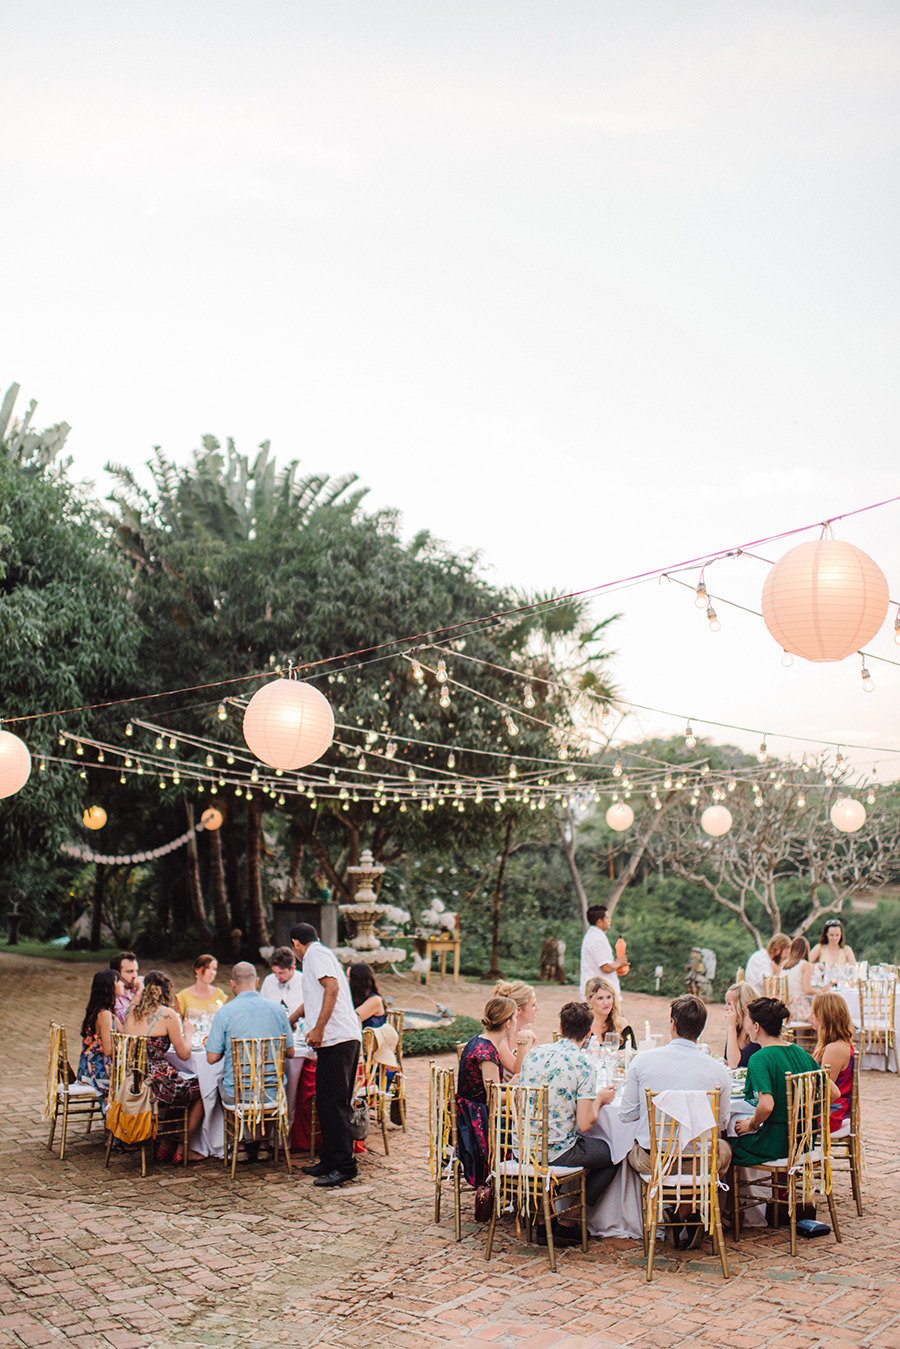 Rehearsal Dinner Guest List Etiquette Who Should Be Invited